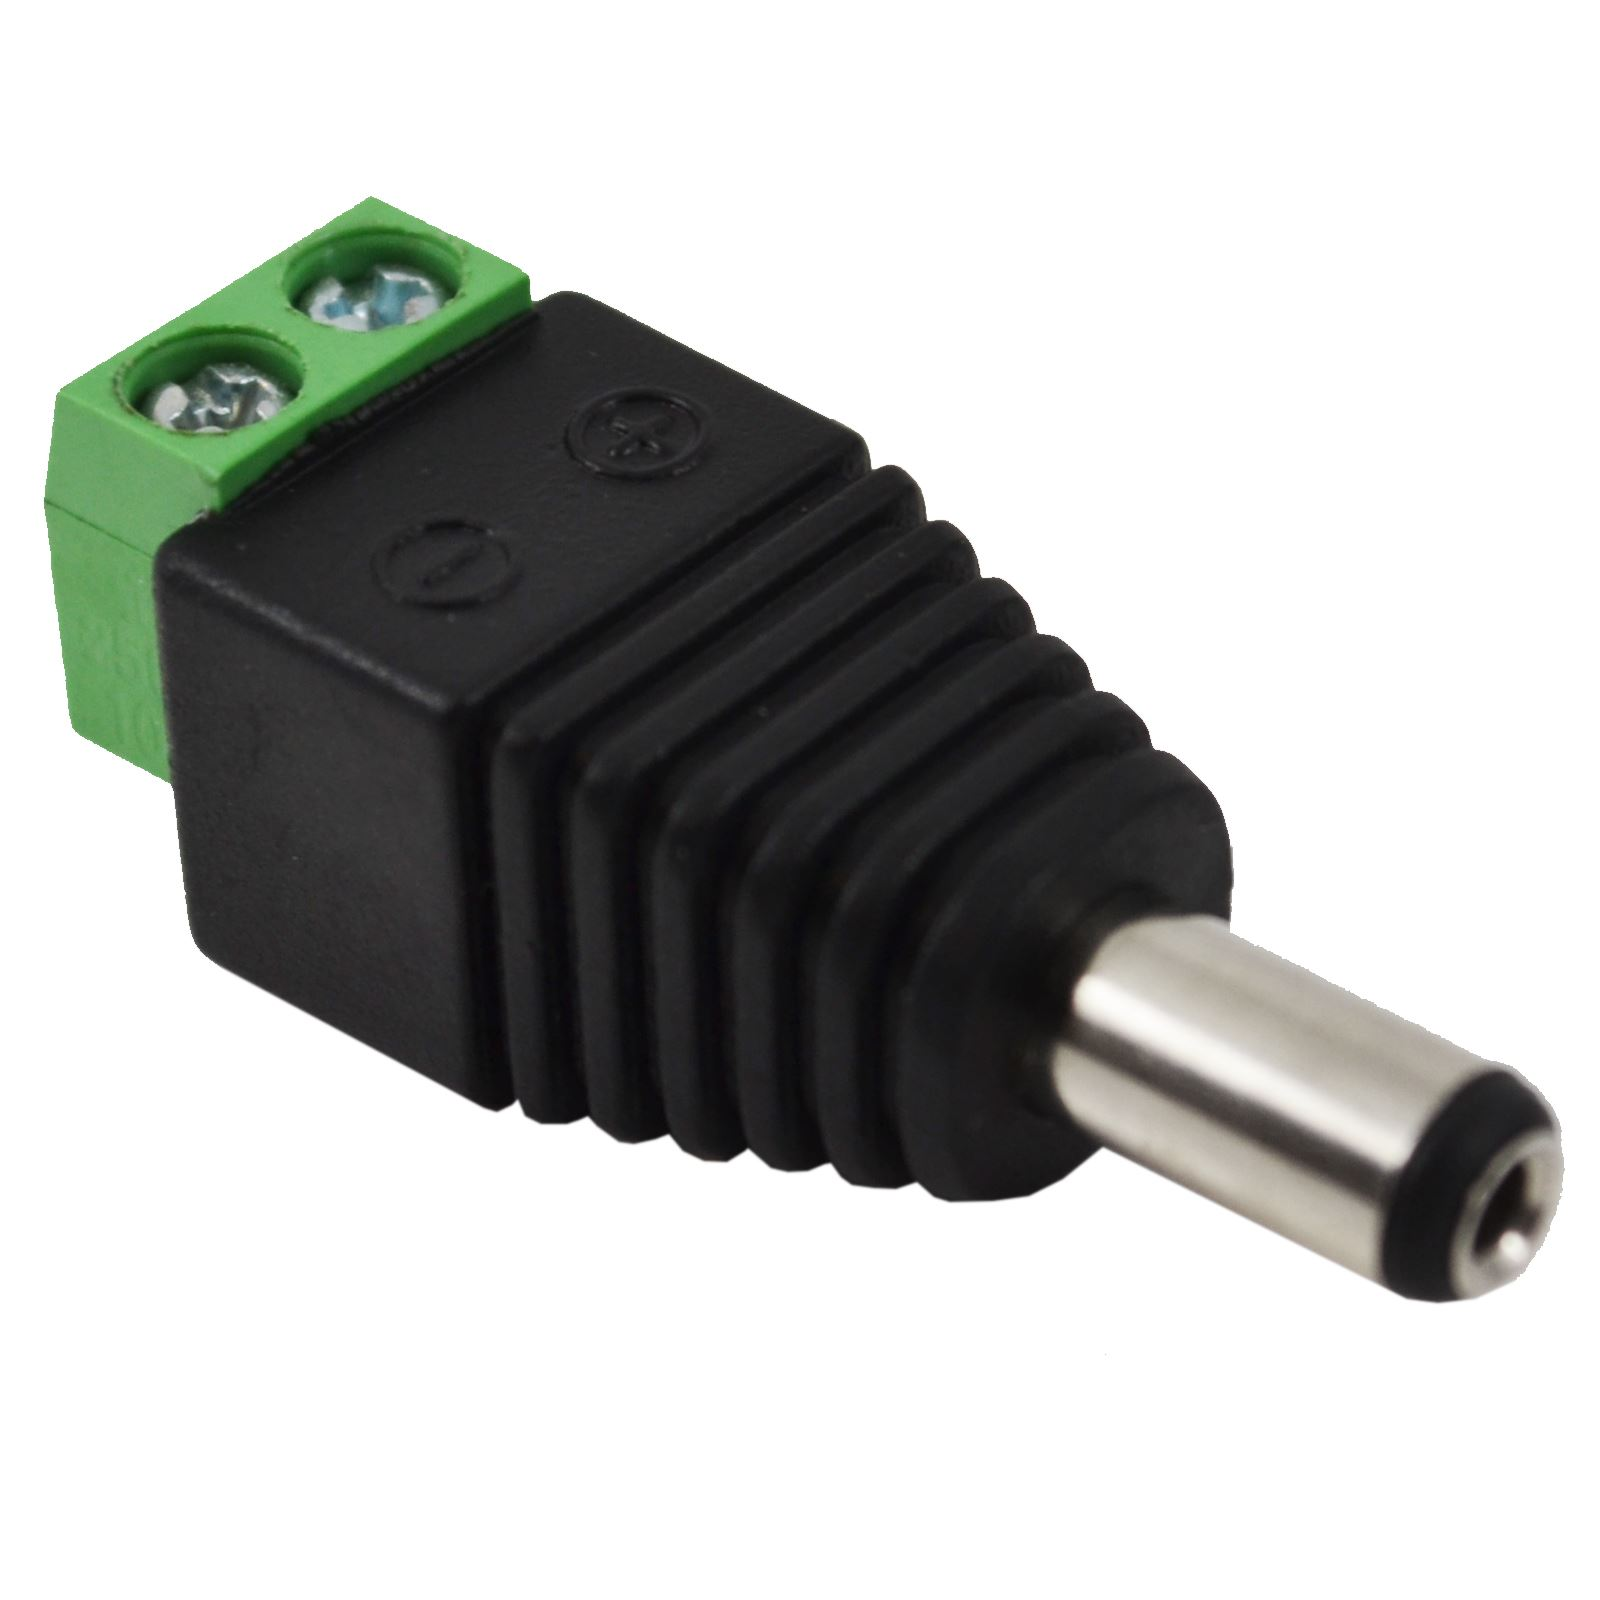 power jack wiring 10 x 12v dc male    power    connector adapter plug    jack    socket  10 x 12v dc male    power    connector adapter plug    jack    socket